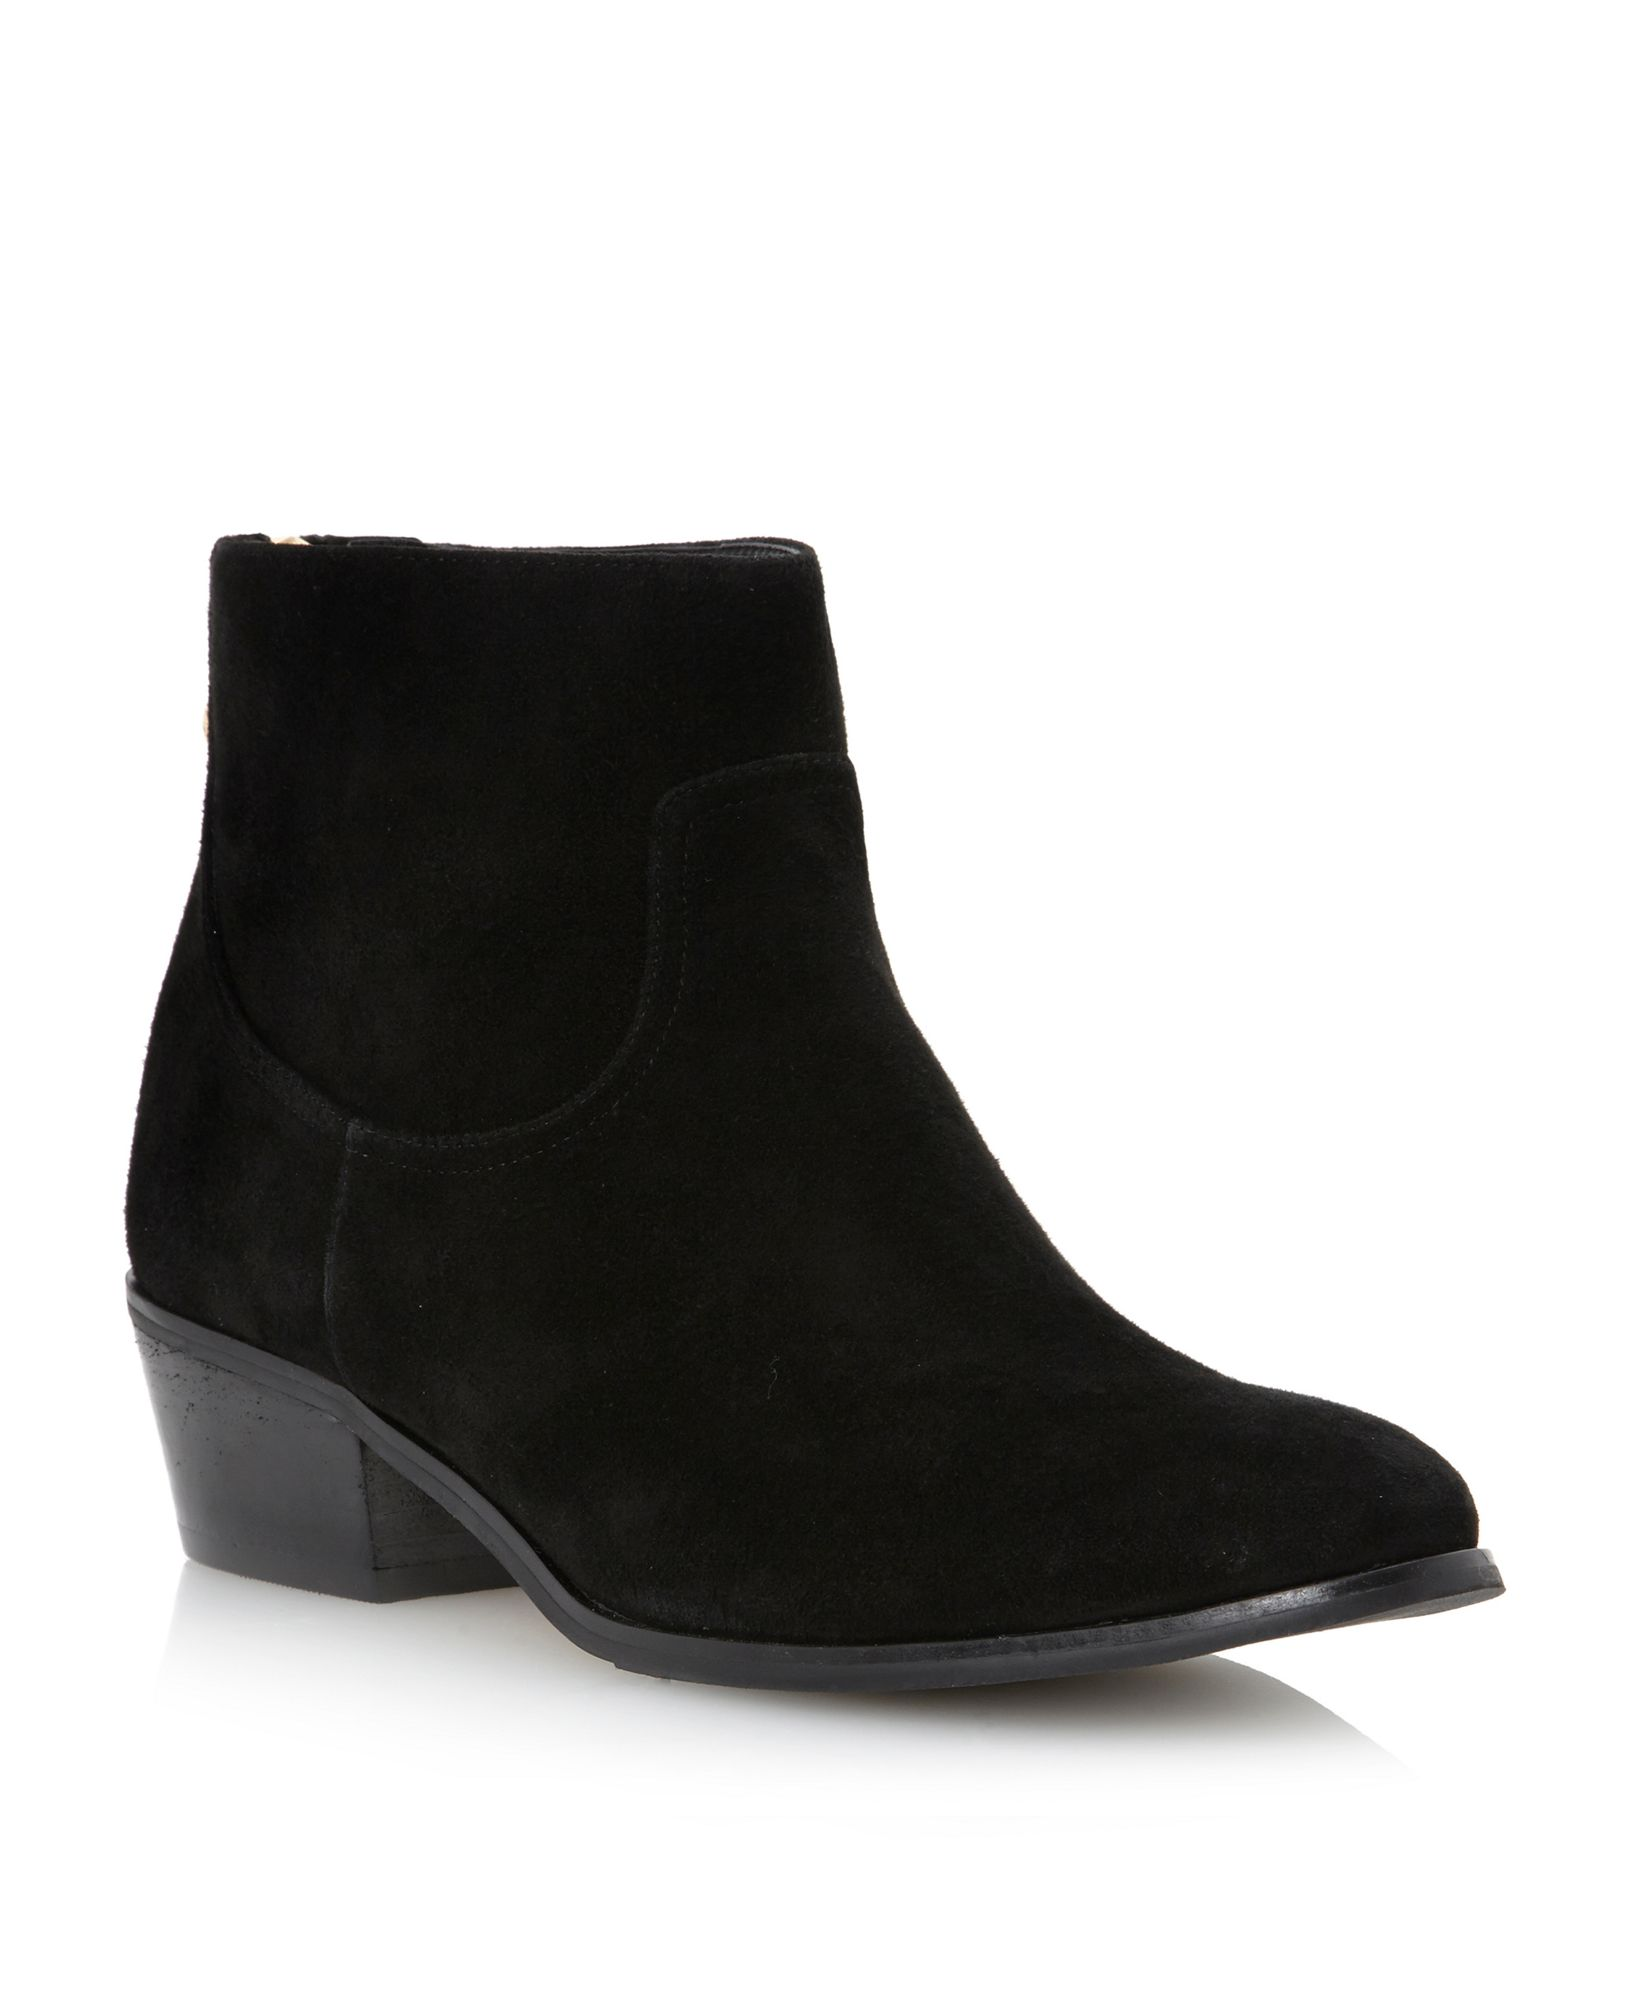 dune poz back zip detail ankle boots in black black suede